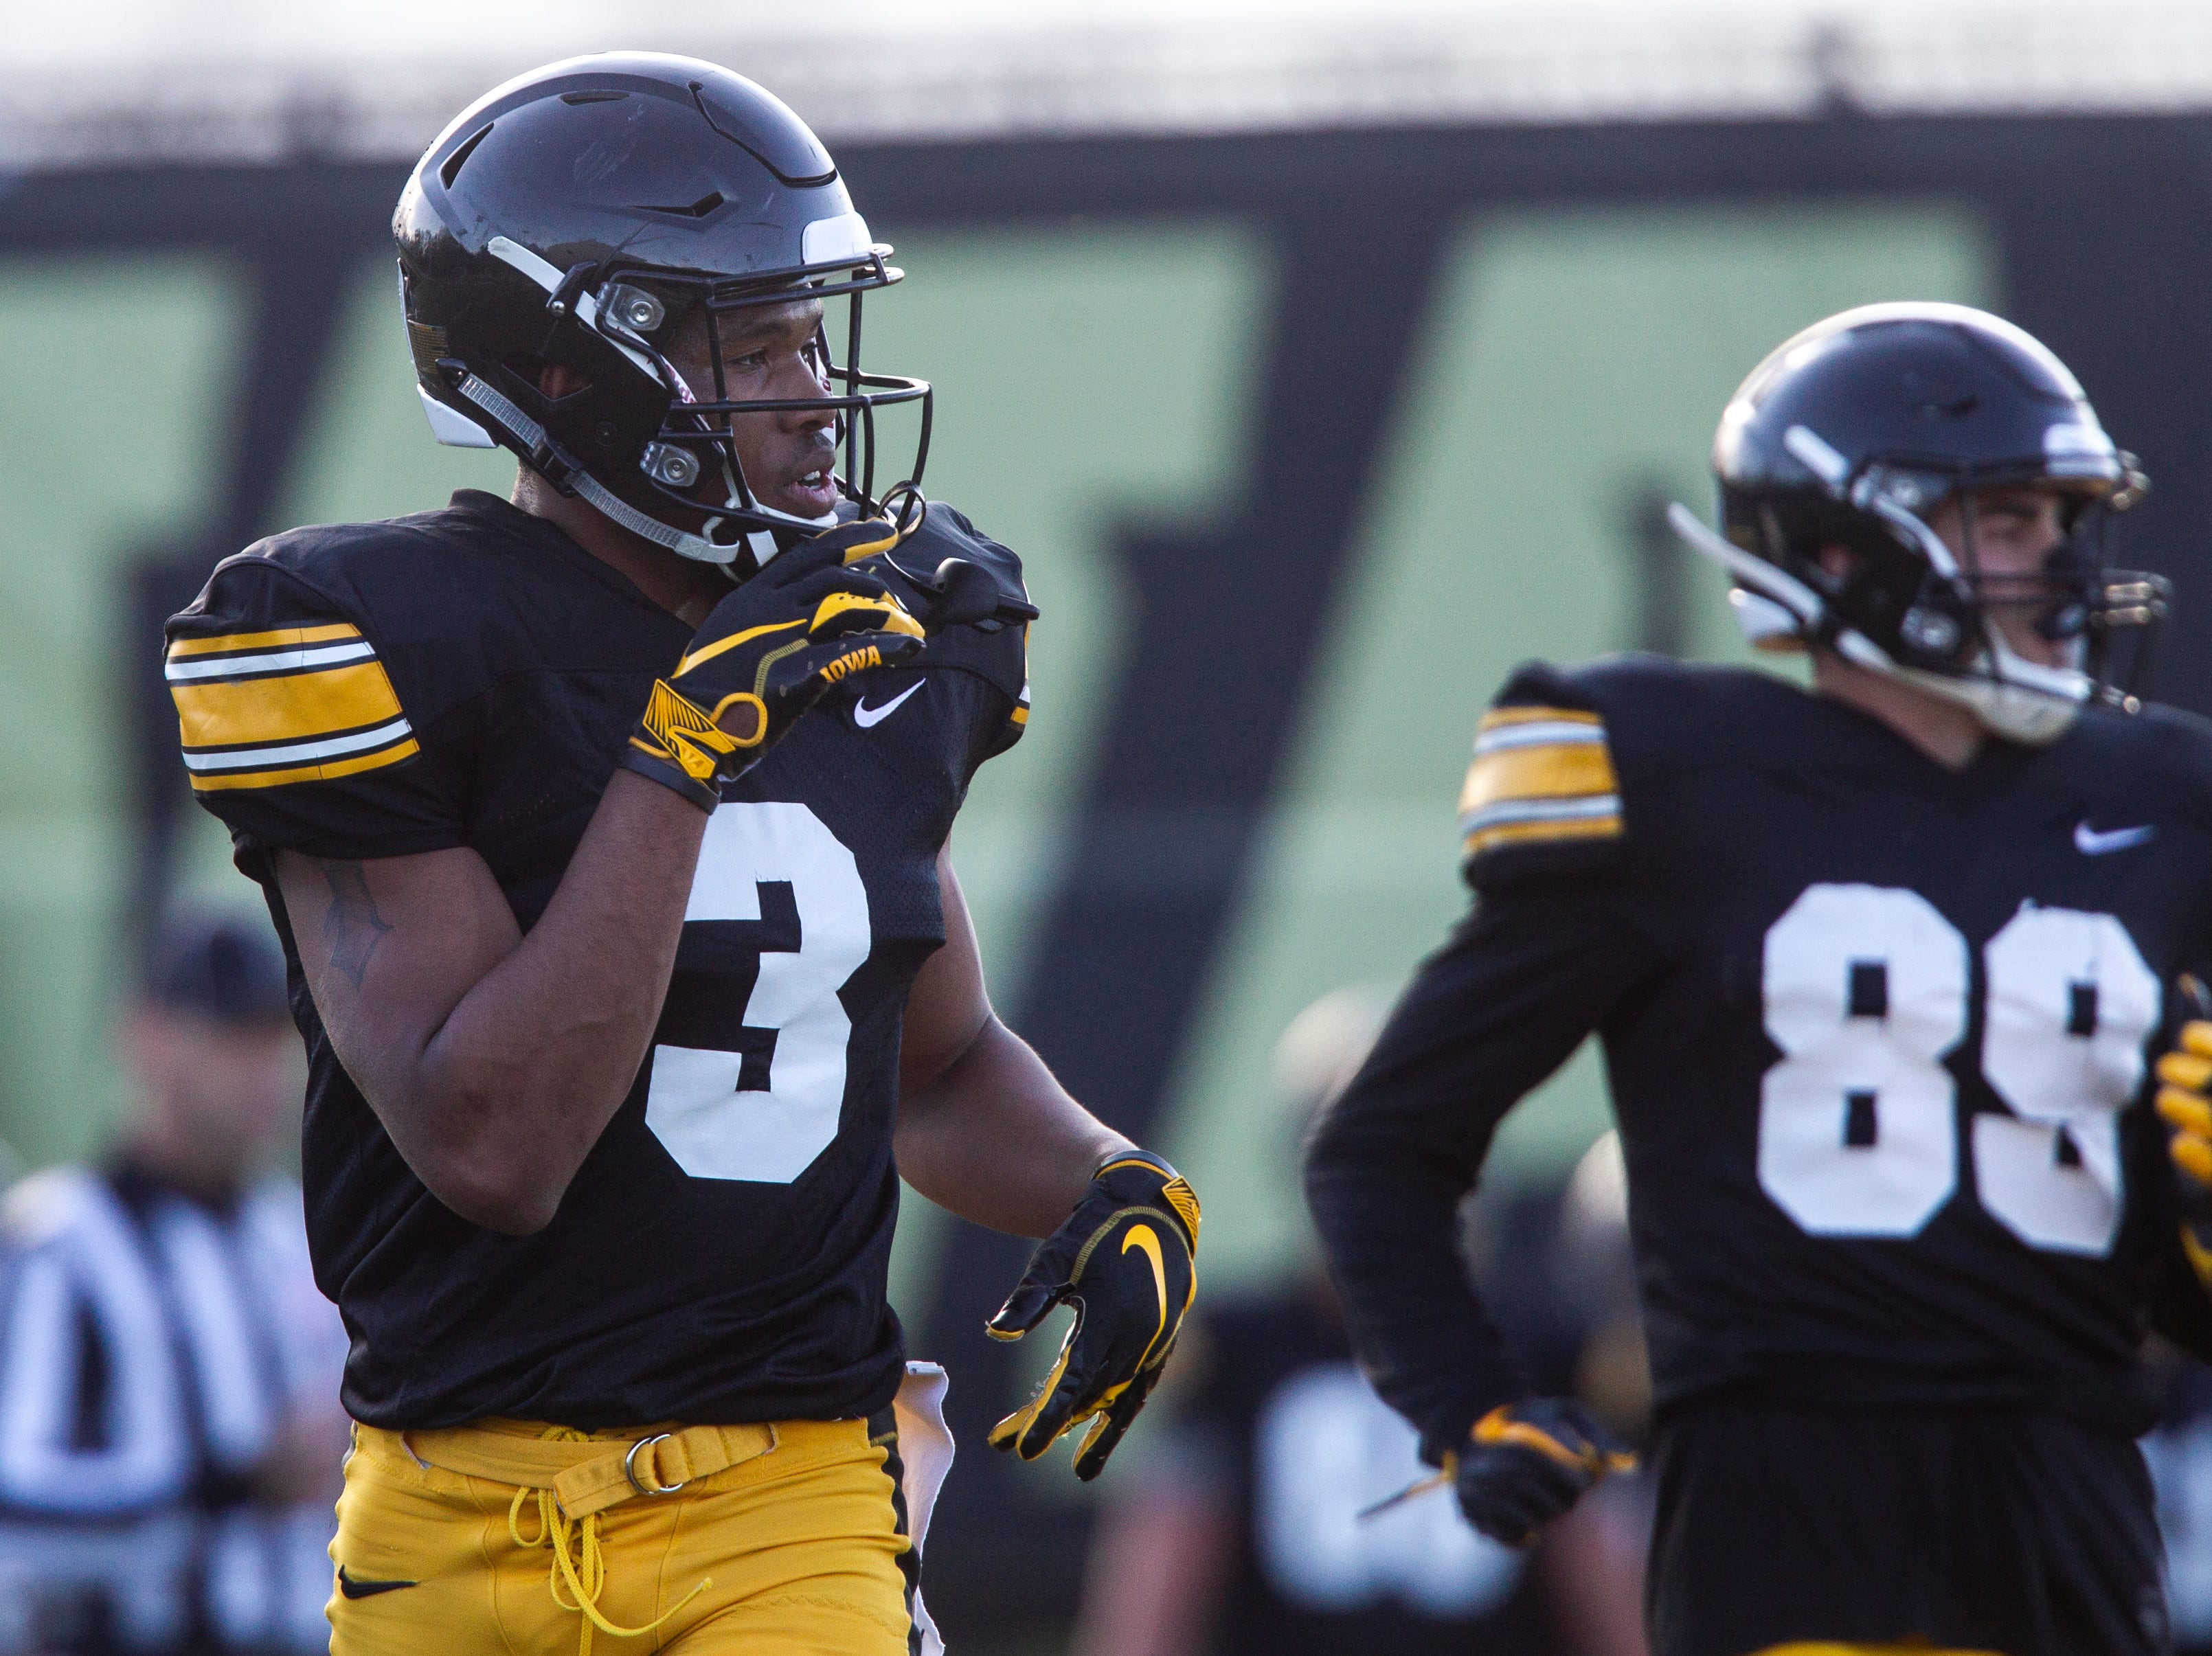 Iowa wide receiver Tyrone Tracy, Jr. (3) is pictured during the final spring football practice, Friday, April 26, 2019, at the University of Iowa outdoor practice facility in Iowa City, Iowa.